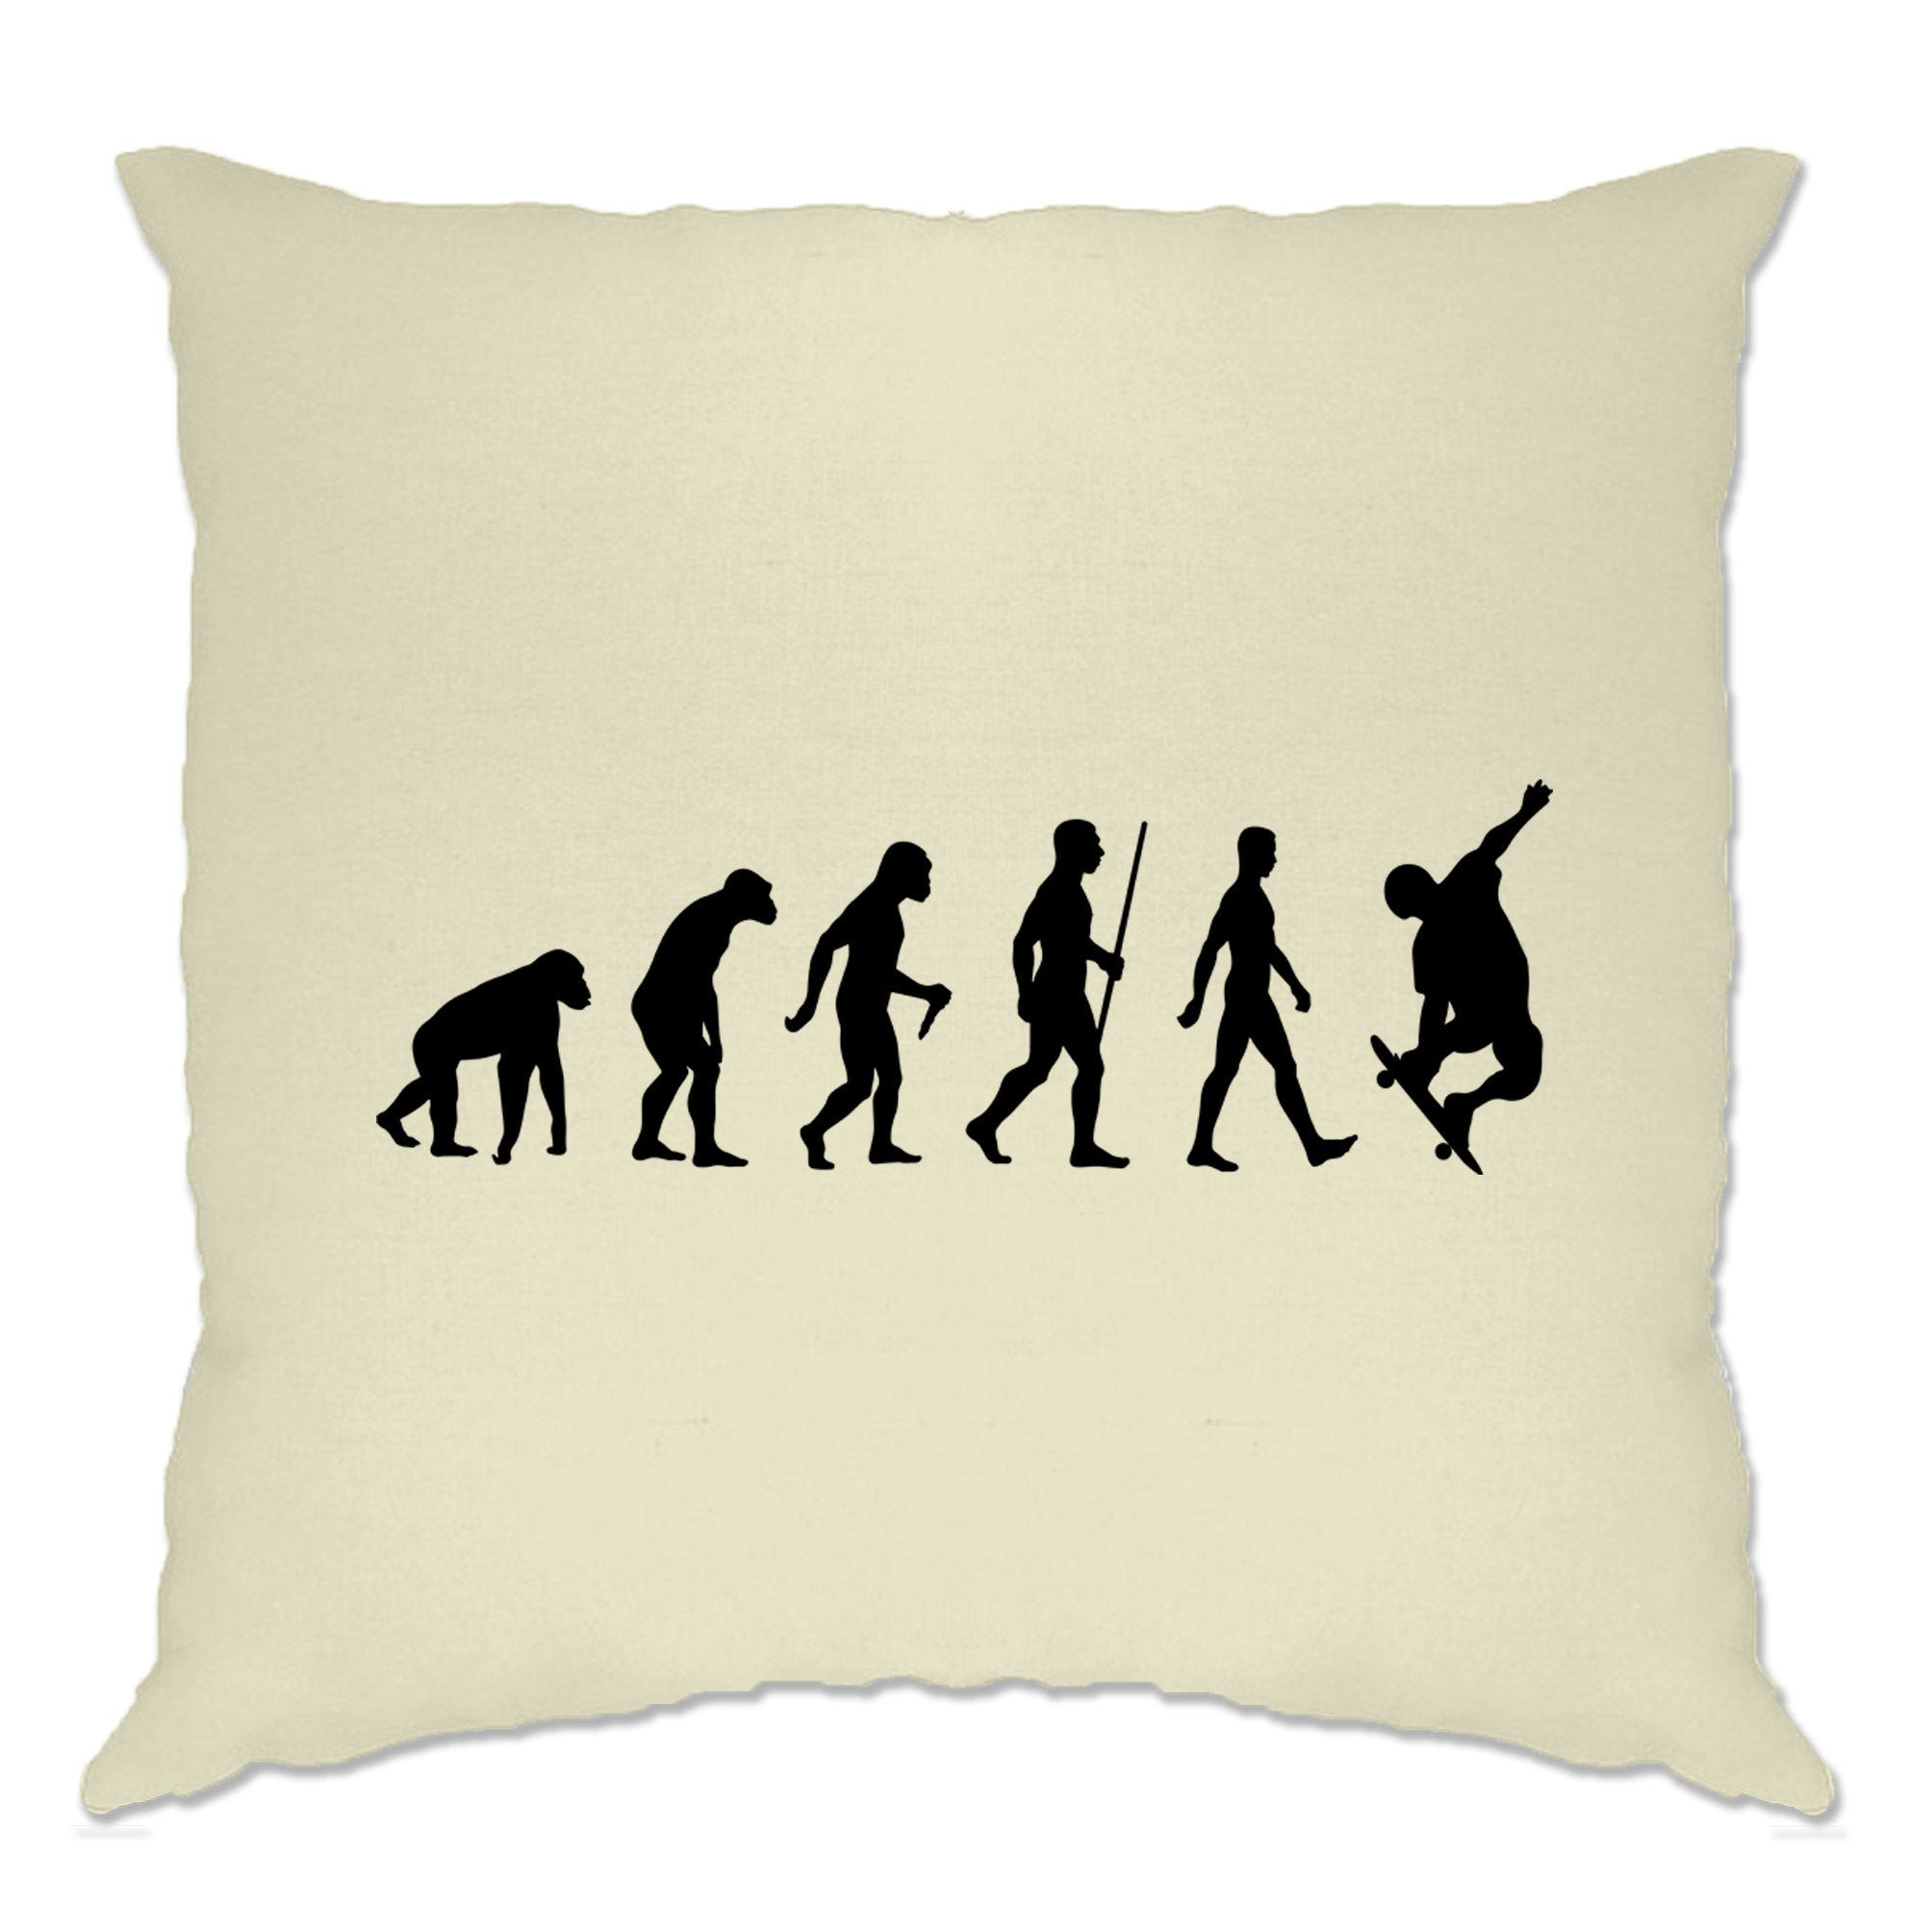 Sports Cushion Cover The Evolution Of A Skateboarder